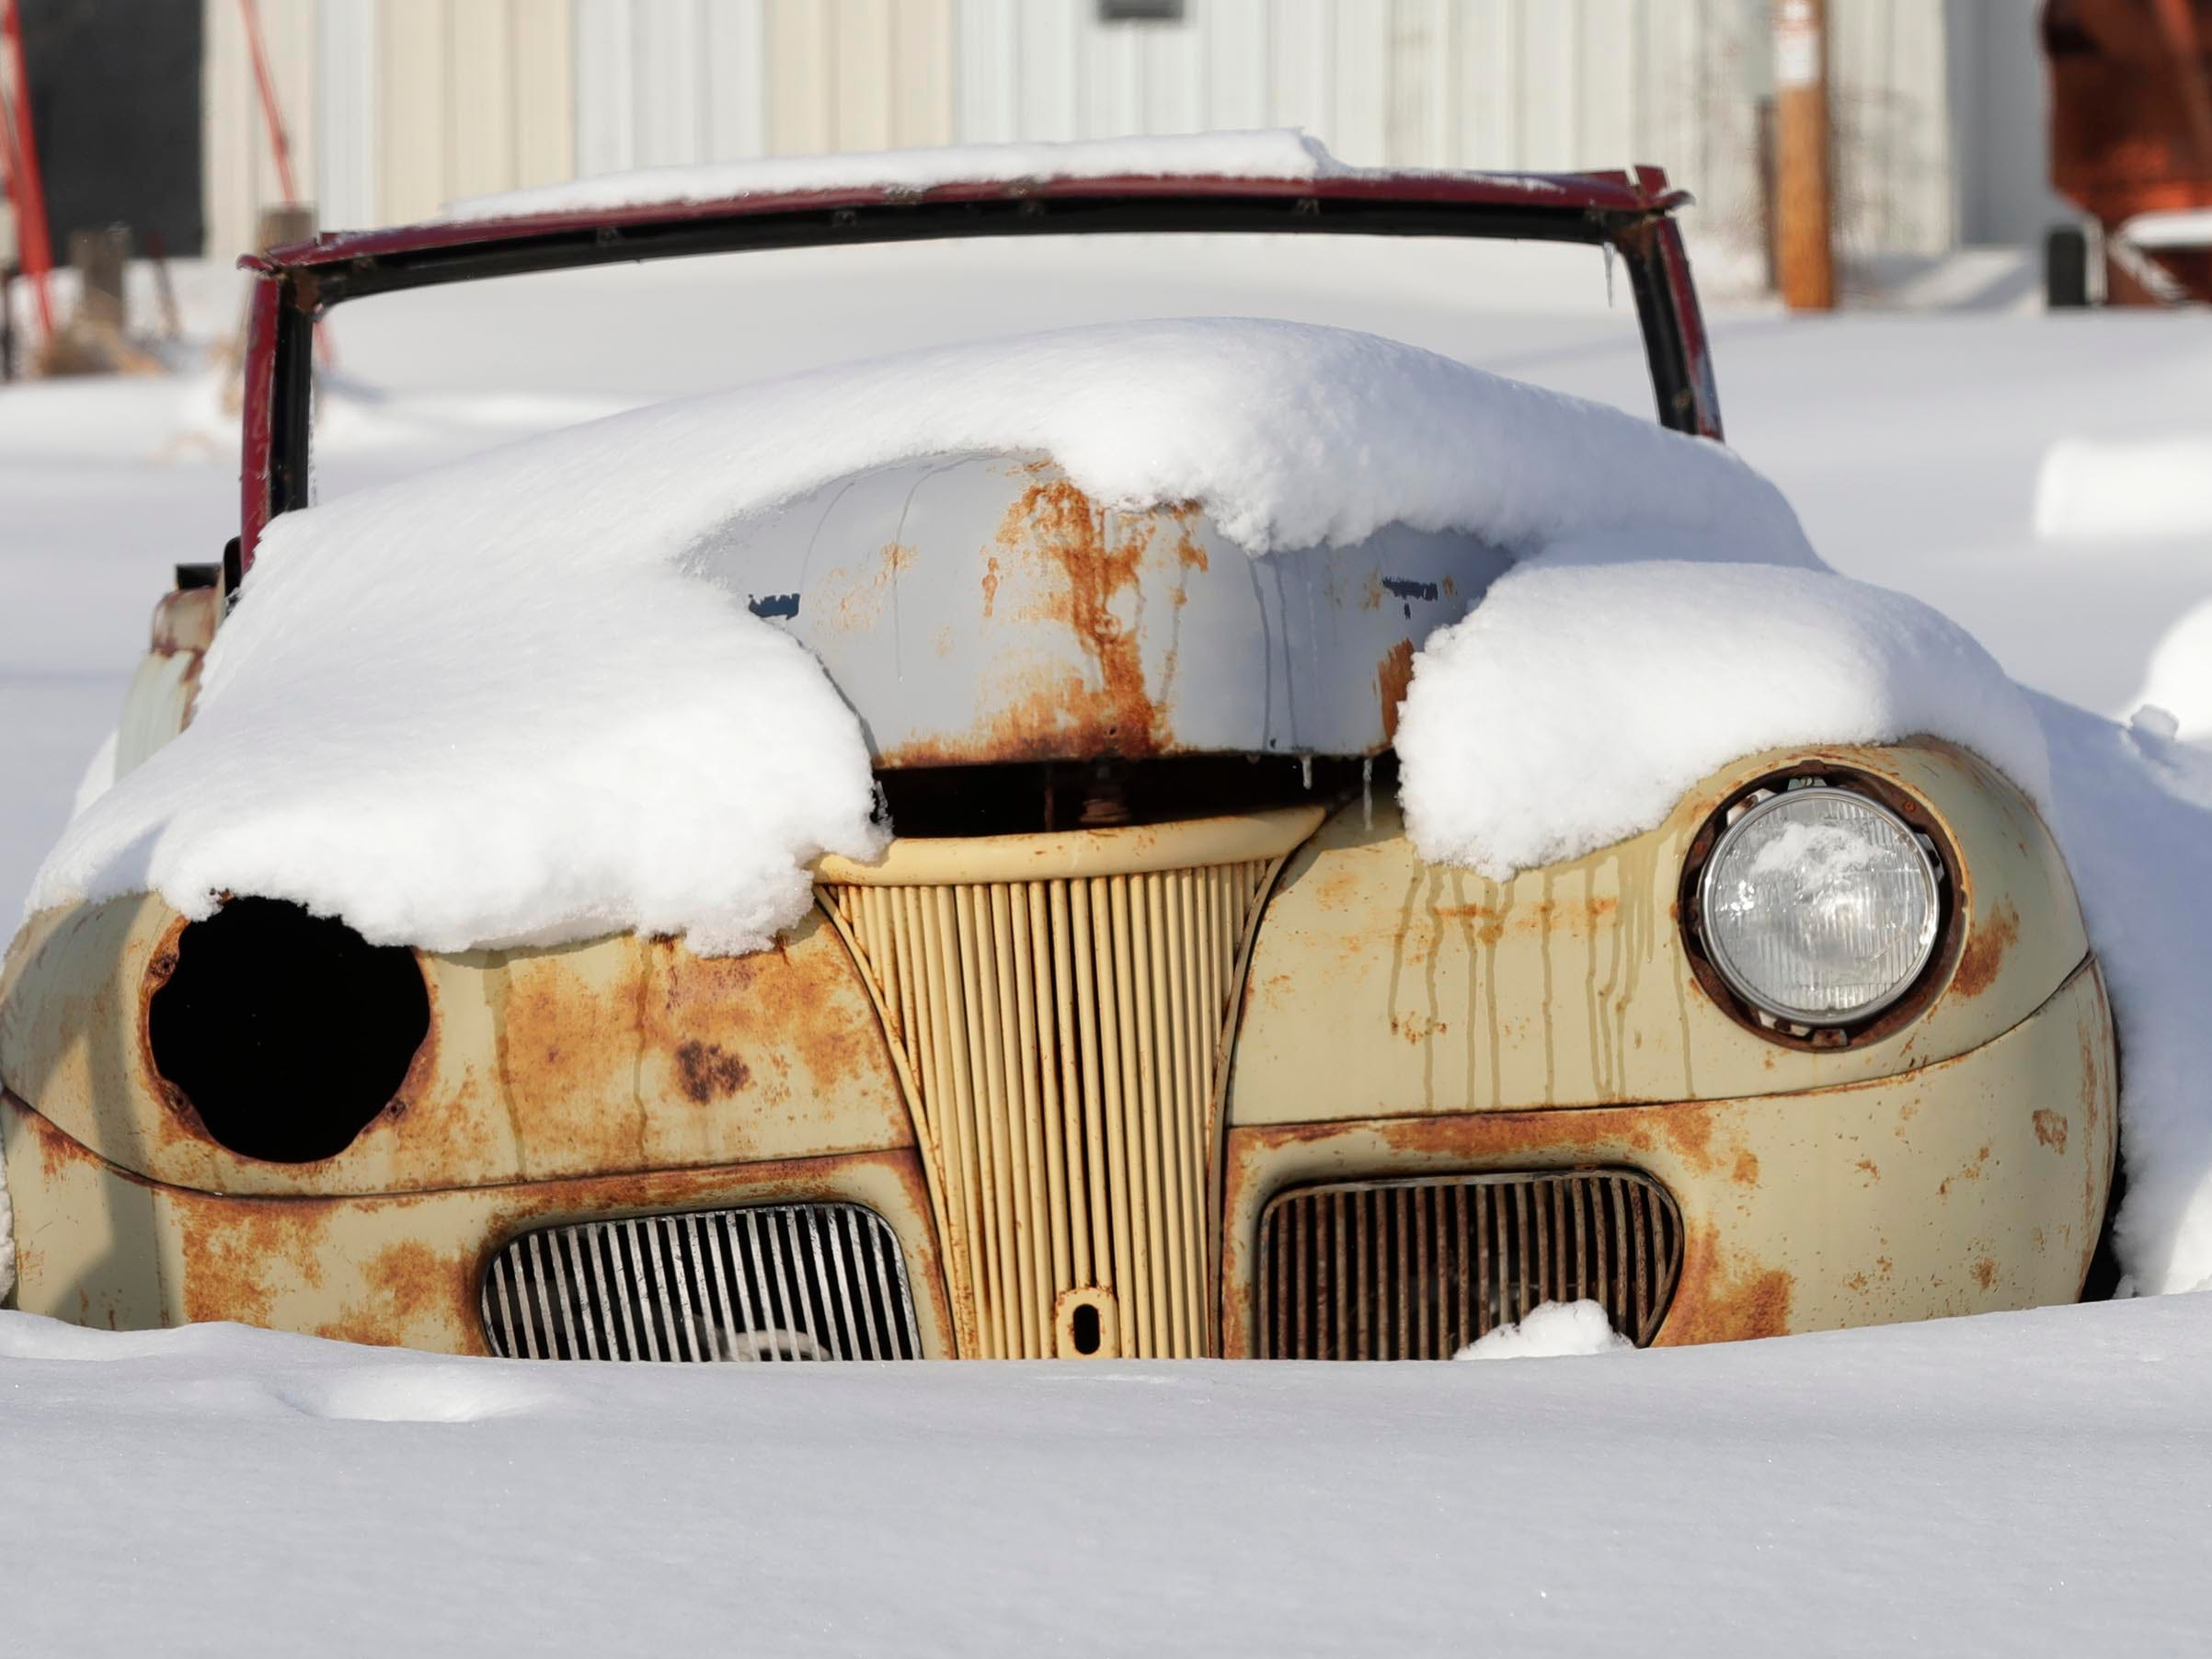 Snow blankets a vintage 1940s car seen along county Highway C near Sheboygan Falls, Wis.